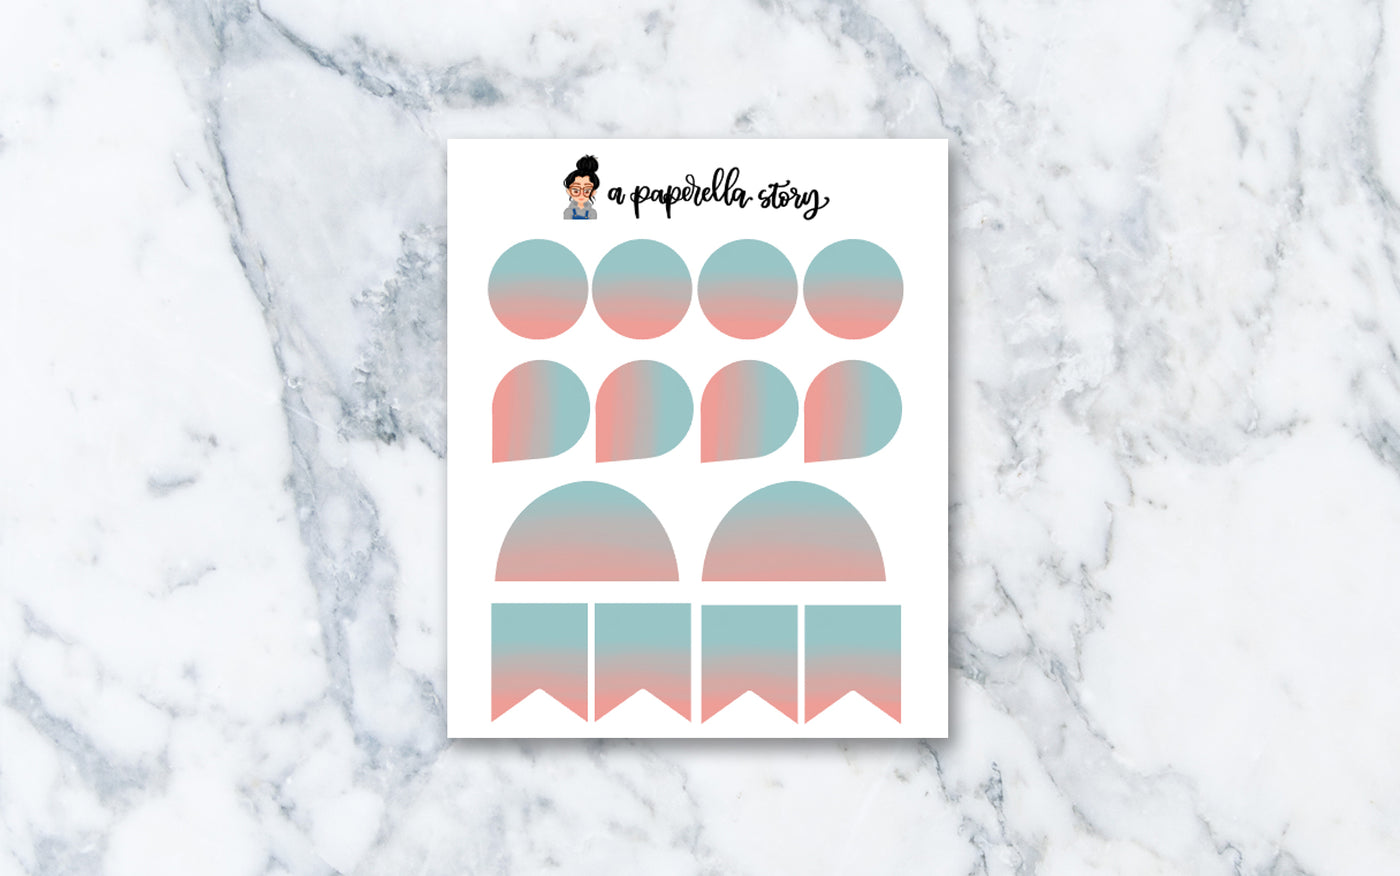 Cotton Candy - Functional Tie Dye Stickers